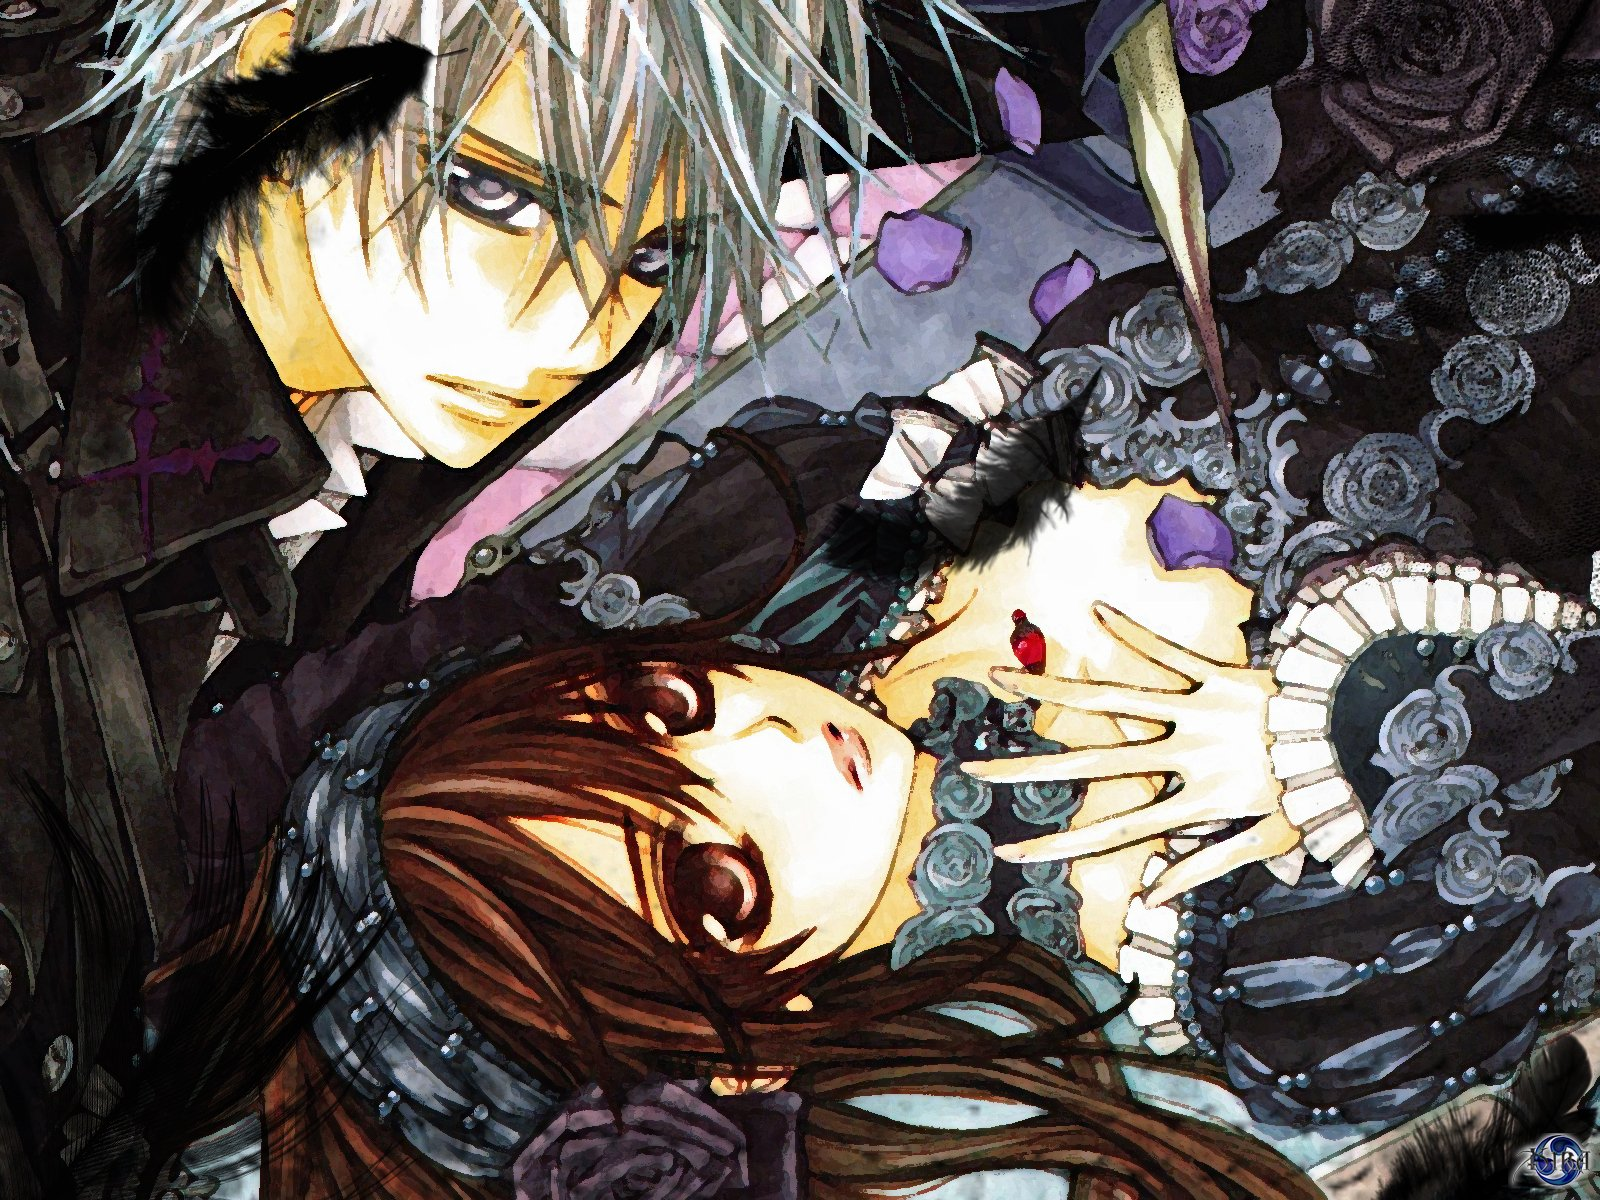 Vampire knight wallpaper and background image 1600x1200 - Vampire knight anime wallpaper ...